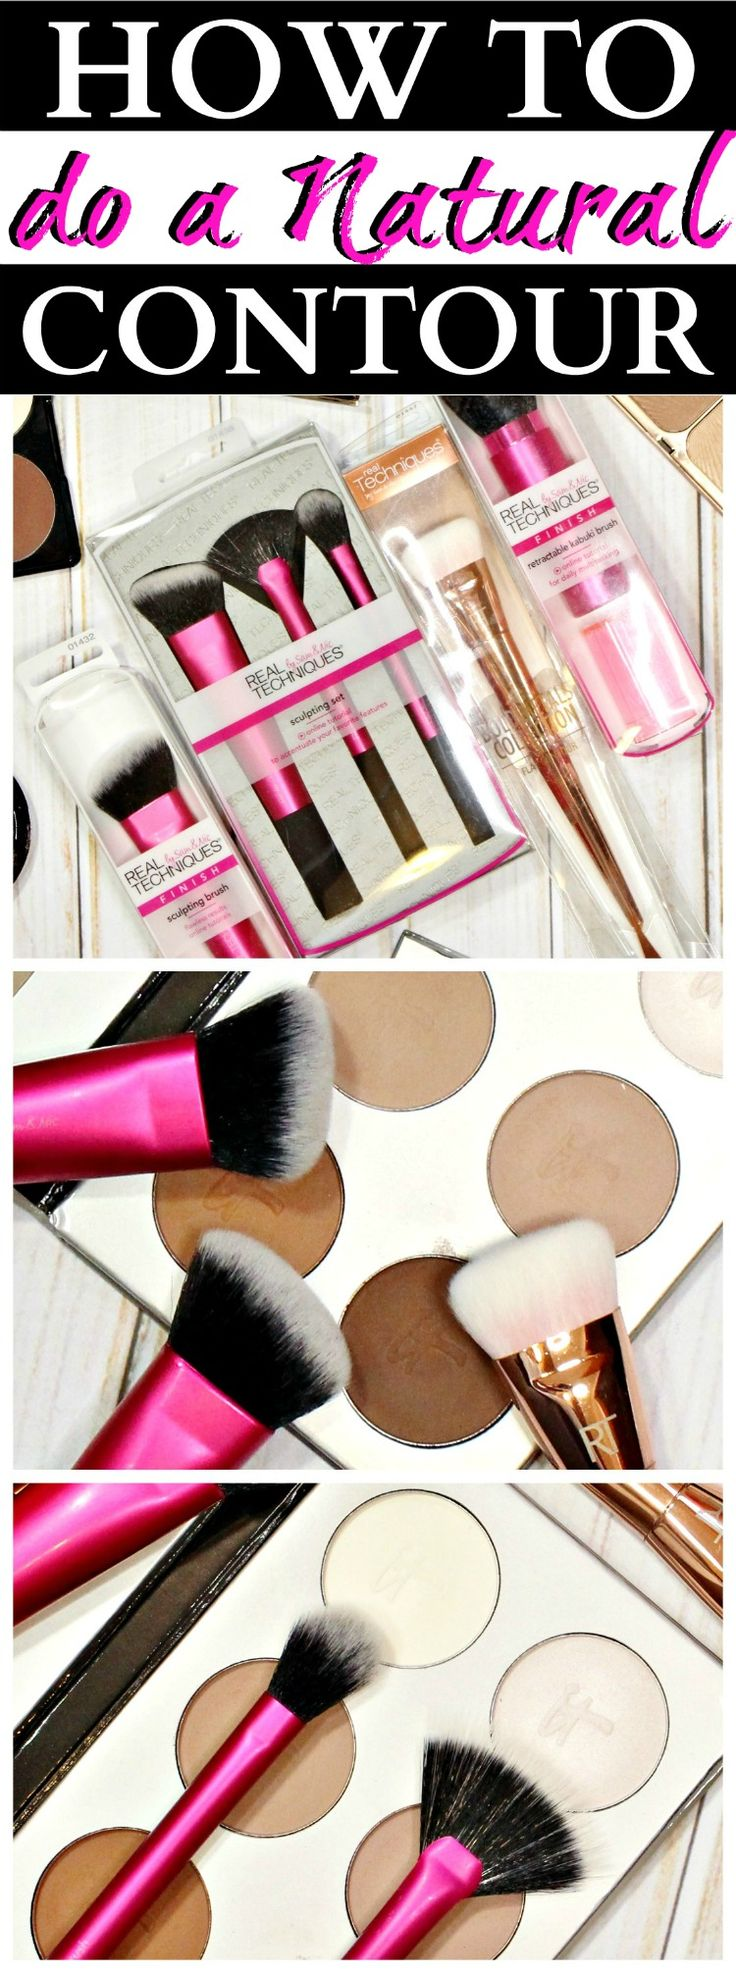 How to Contour NATURALLY using all the right brushes and a lot of blending! #ad #RTSculpt